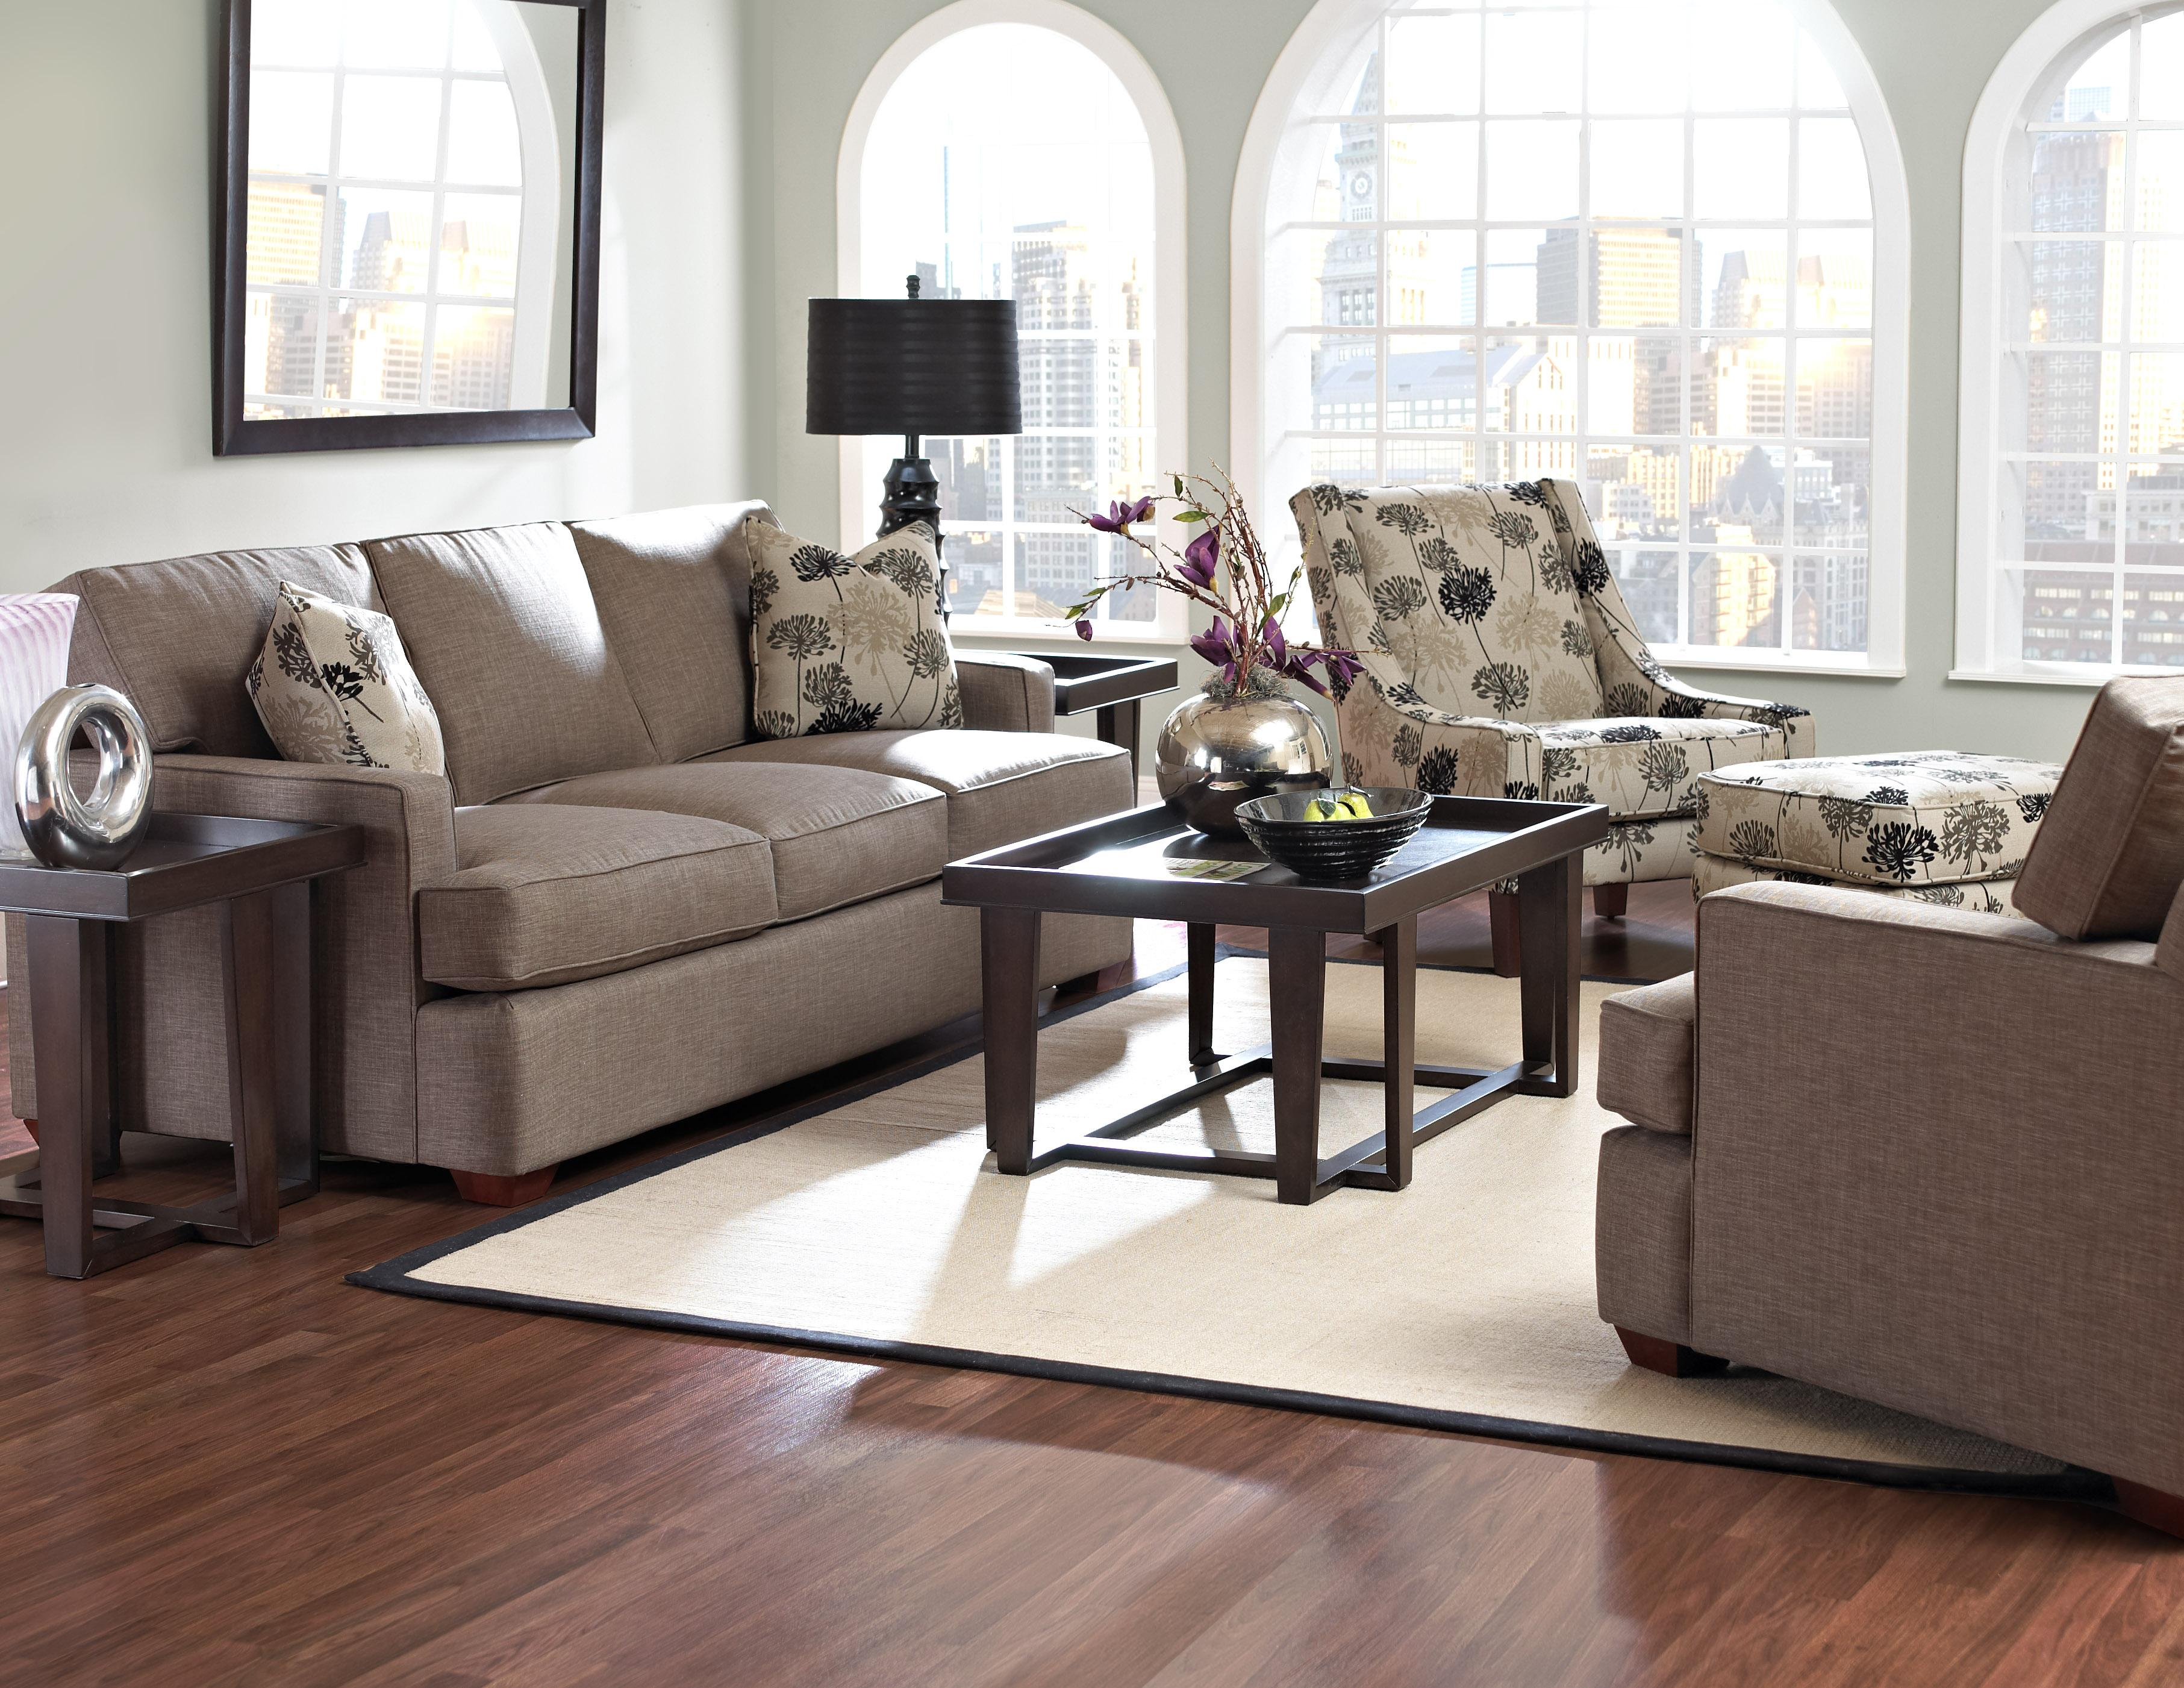 Klaussner Loomis 2 Piece Sectional Sofa Group | Godby Home Furnishings |  Sectional Sofas Noblesville, Carmel, Avon, Indianapolis, Indiana